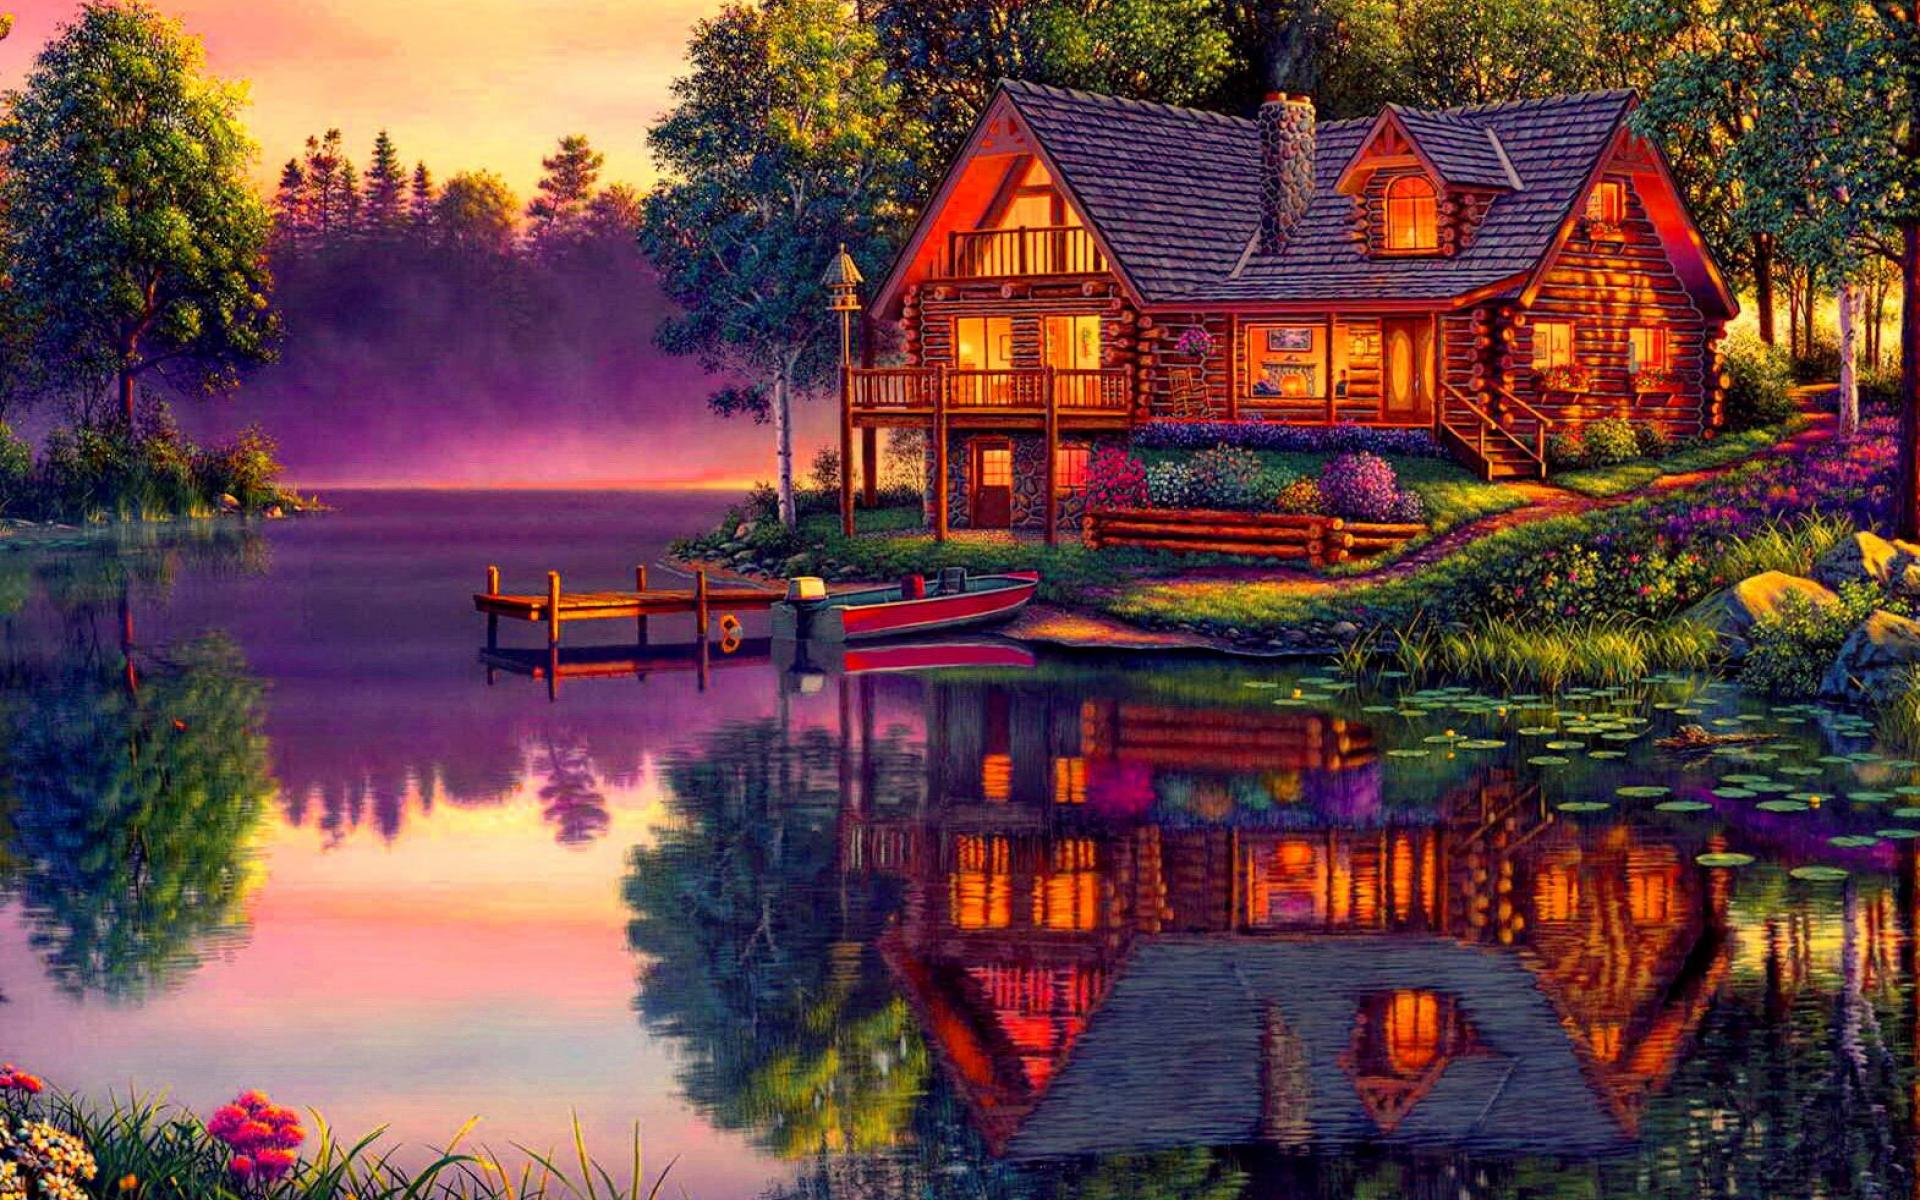 Log Cabin On The Lake Hd Wallpaper Background Image 1920x1200 Id 680454 Wallpaper Abyss